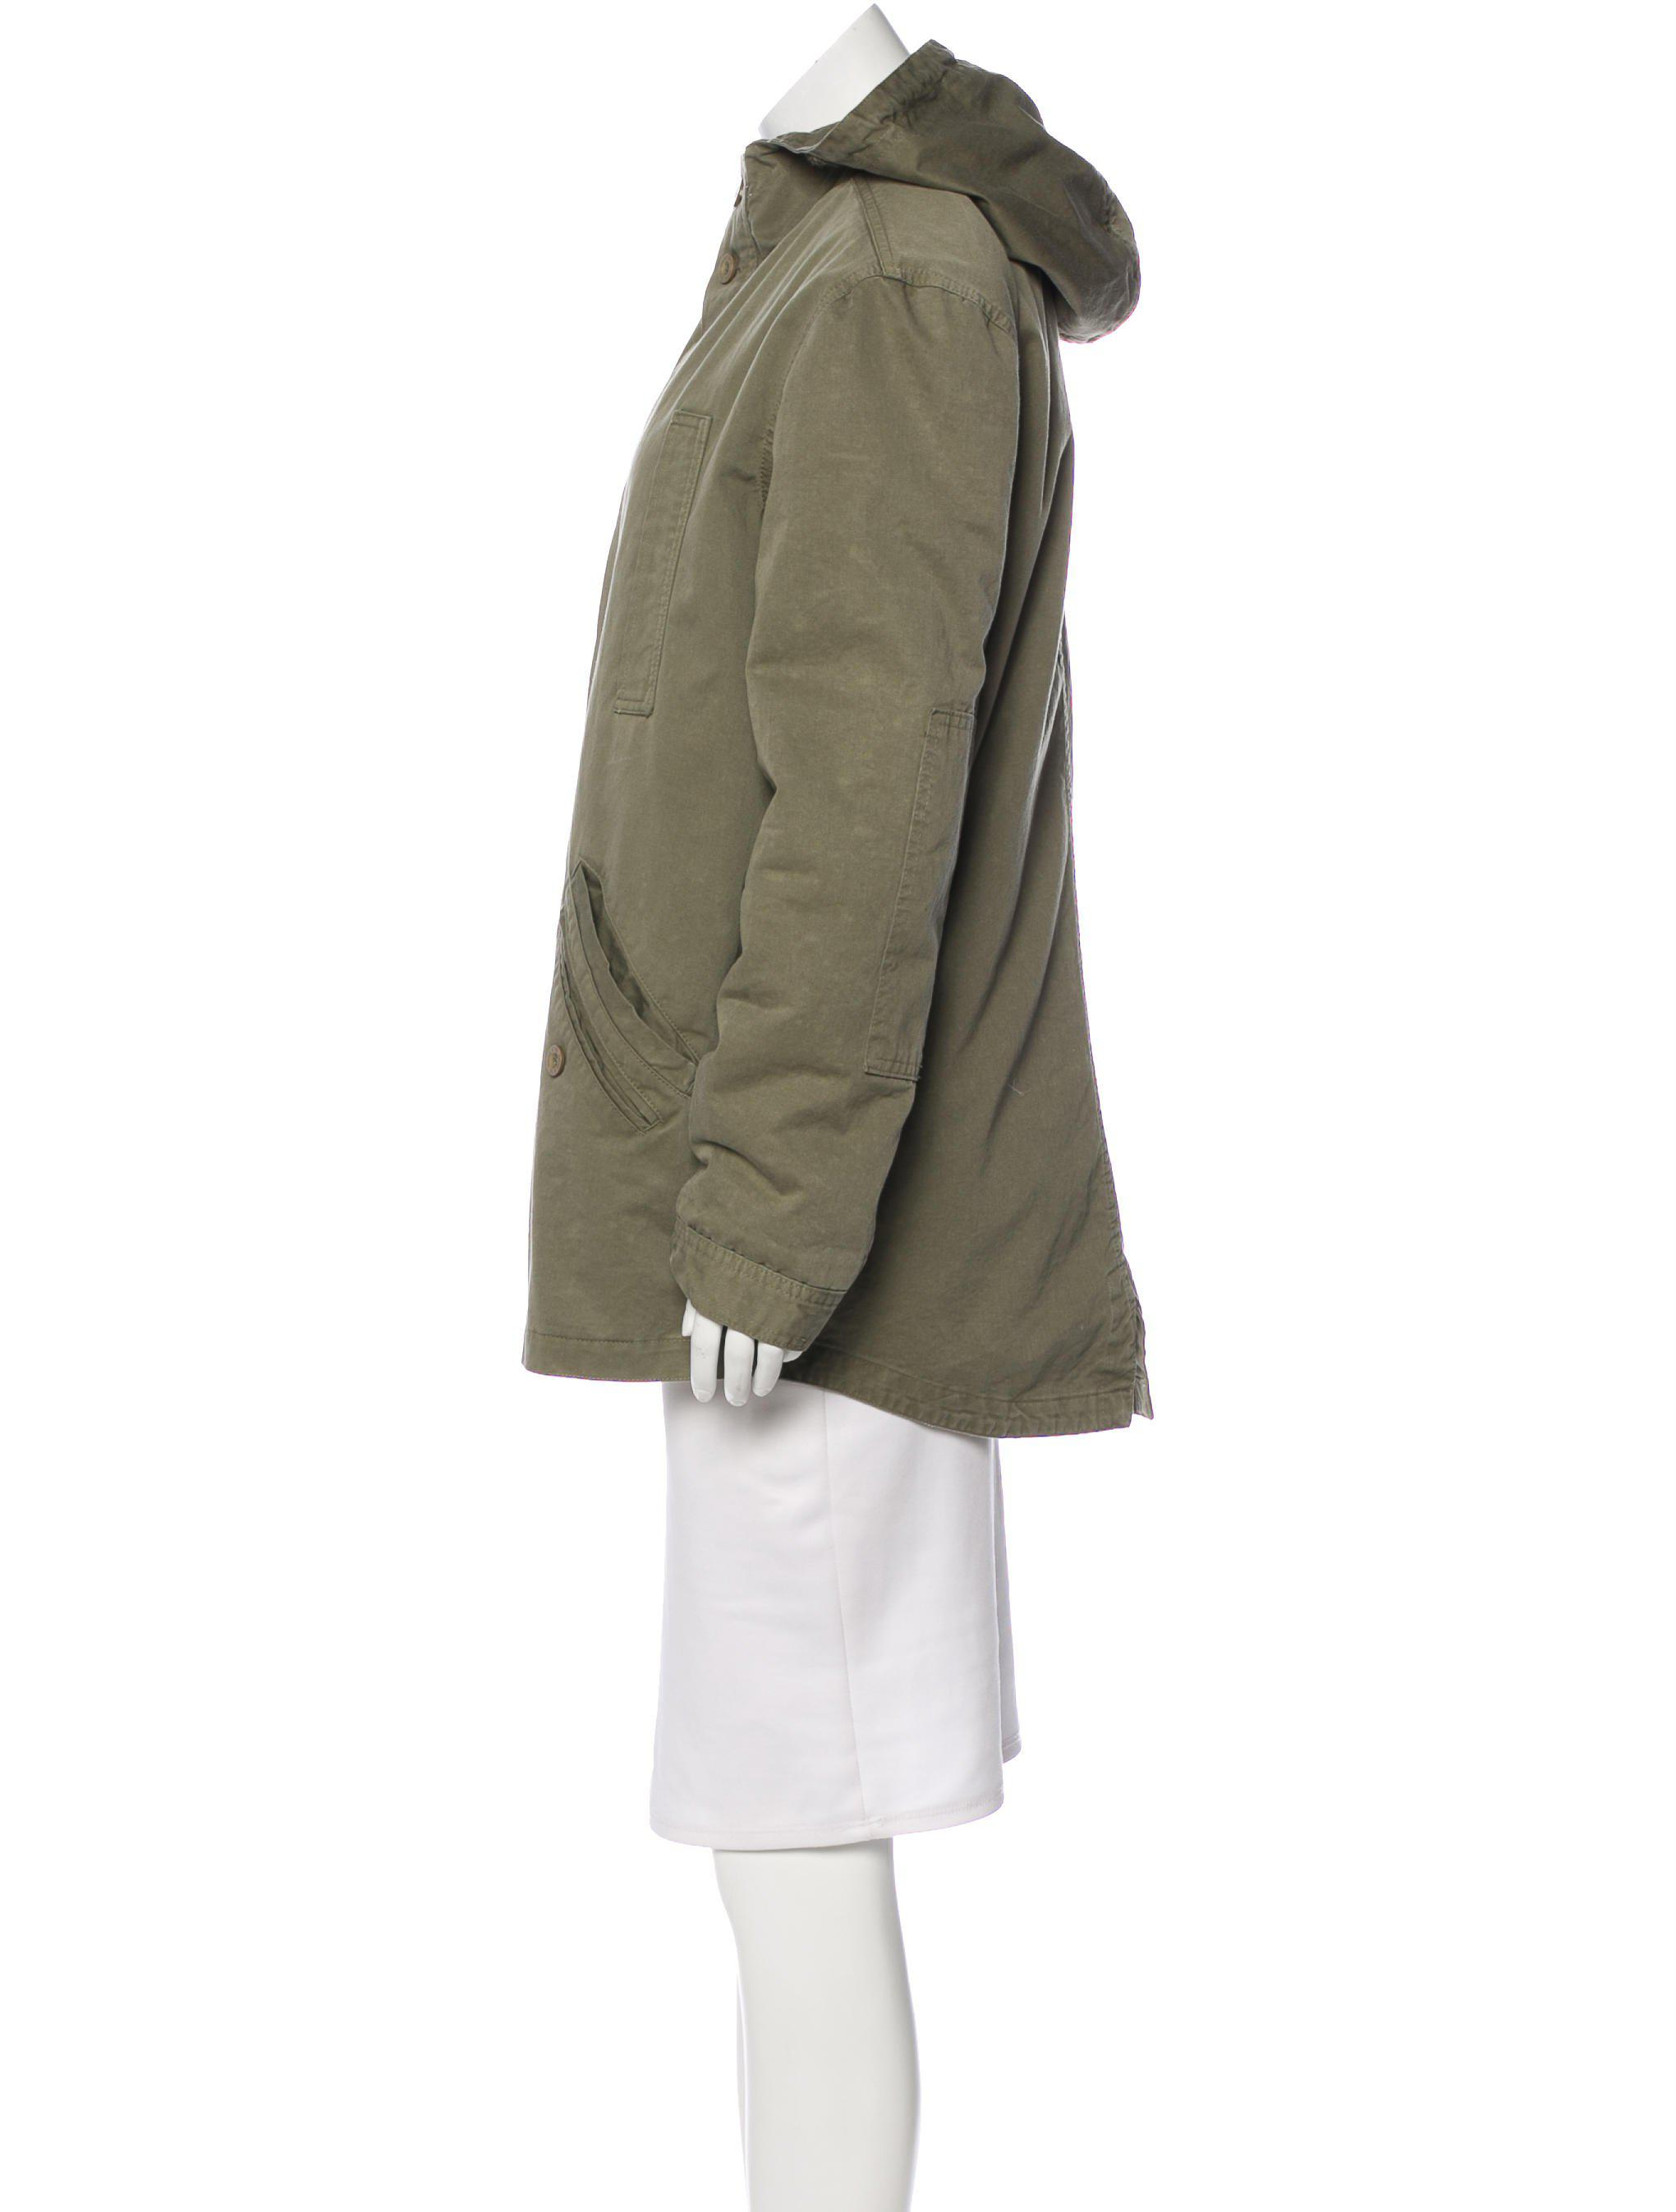 Lyst Anine Bing Hooded Short Coat In Green With Hood